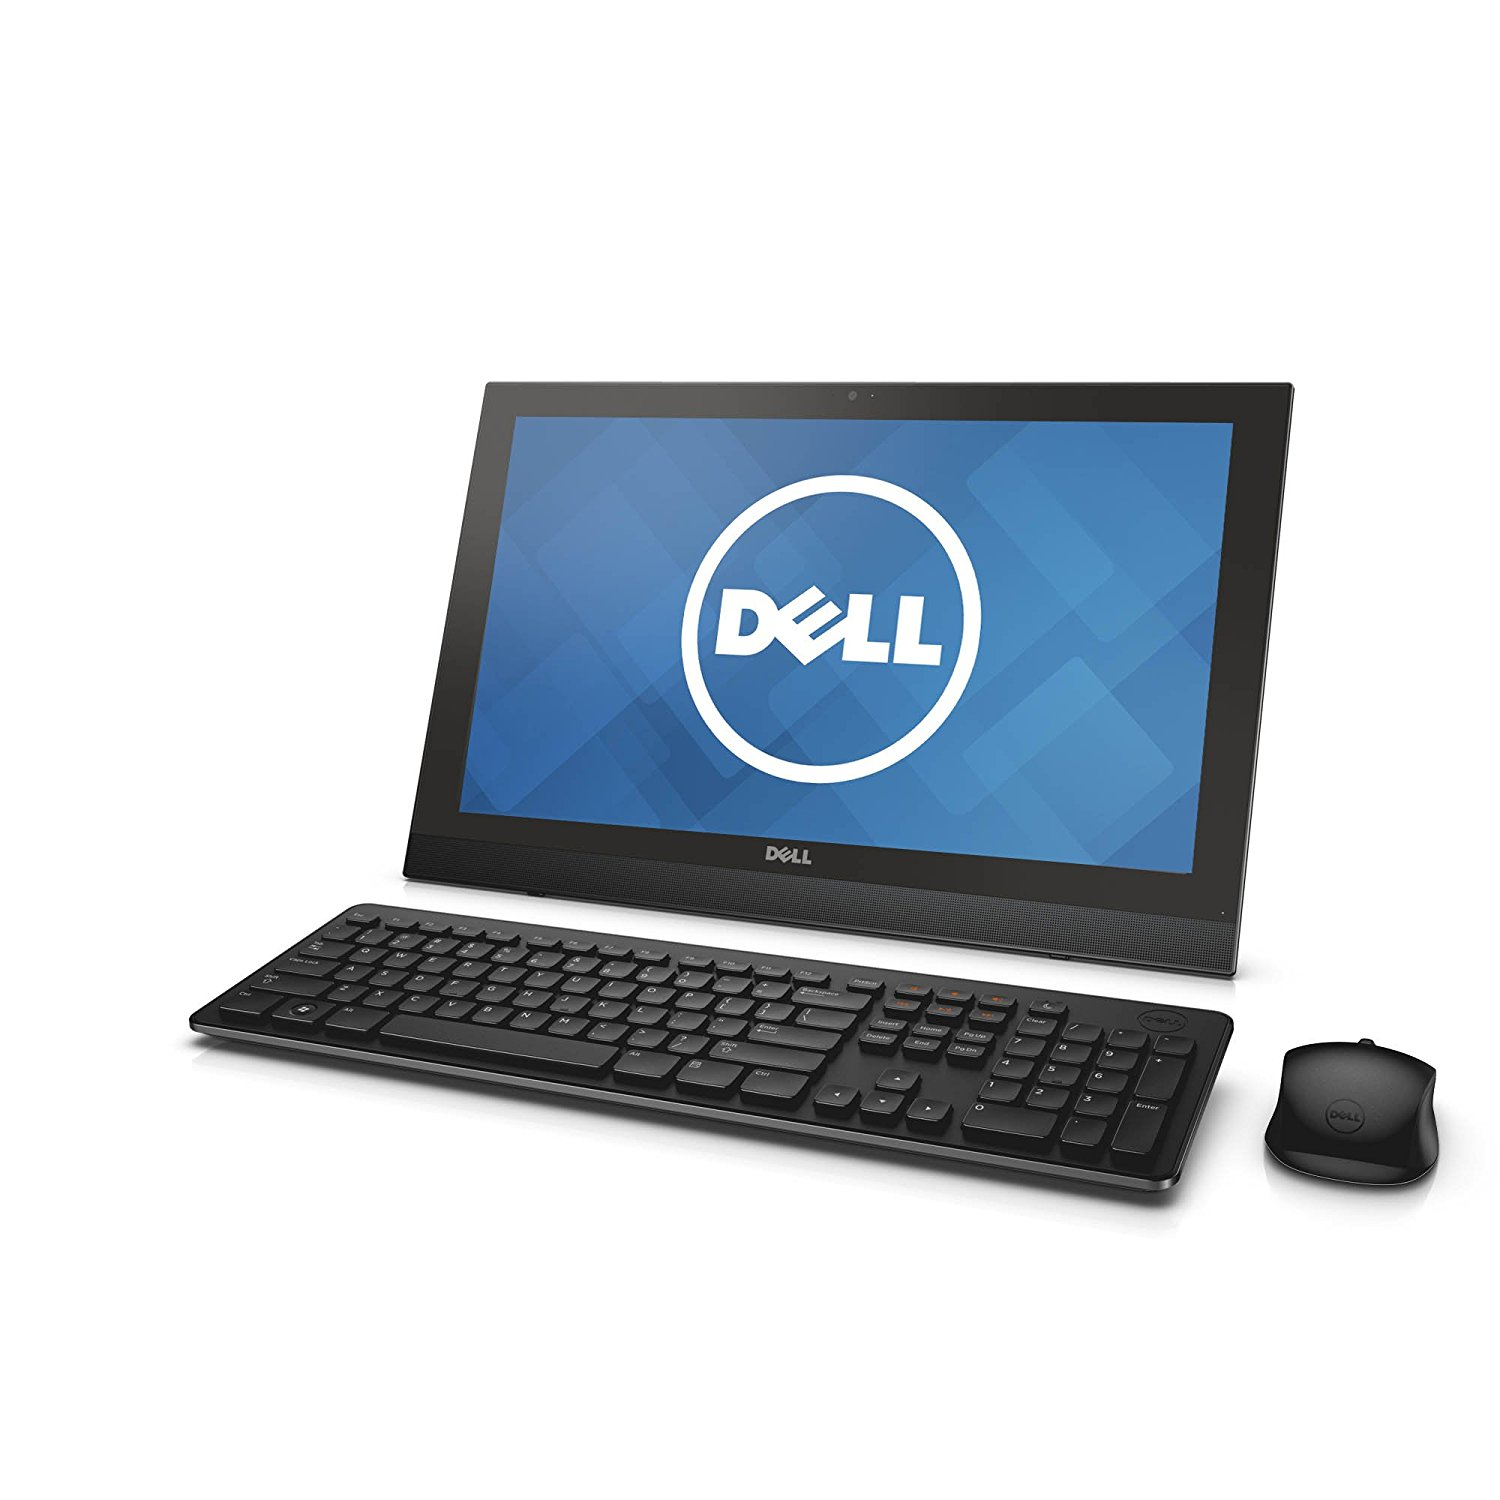 "Open Box - Dell i3043-5002BLK 19.5"" Touch AIO PC Intel N3540 2.16GHz 4GB 500GB Windows 8"